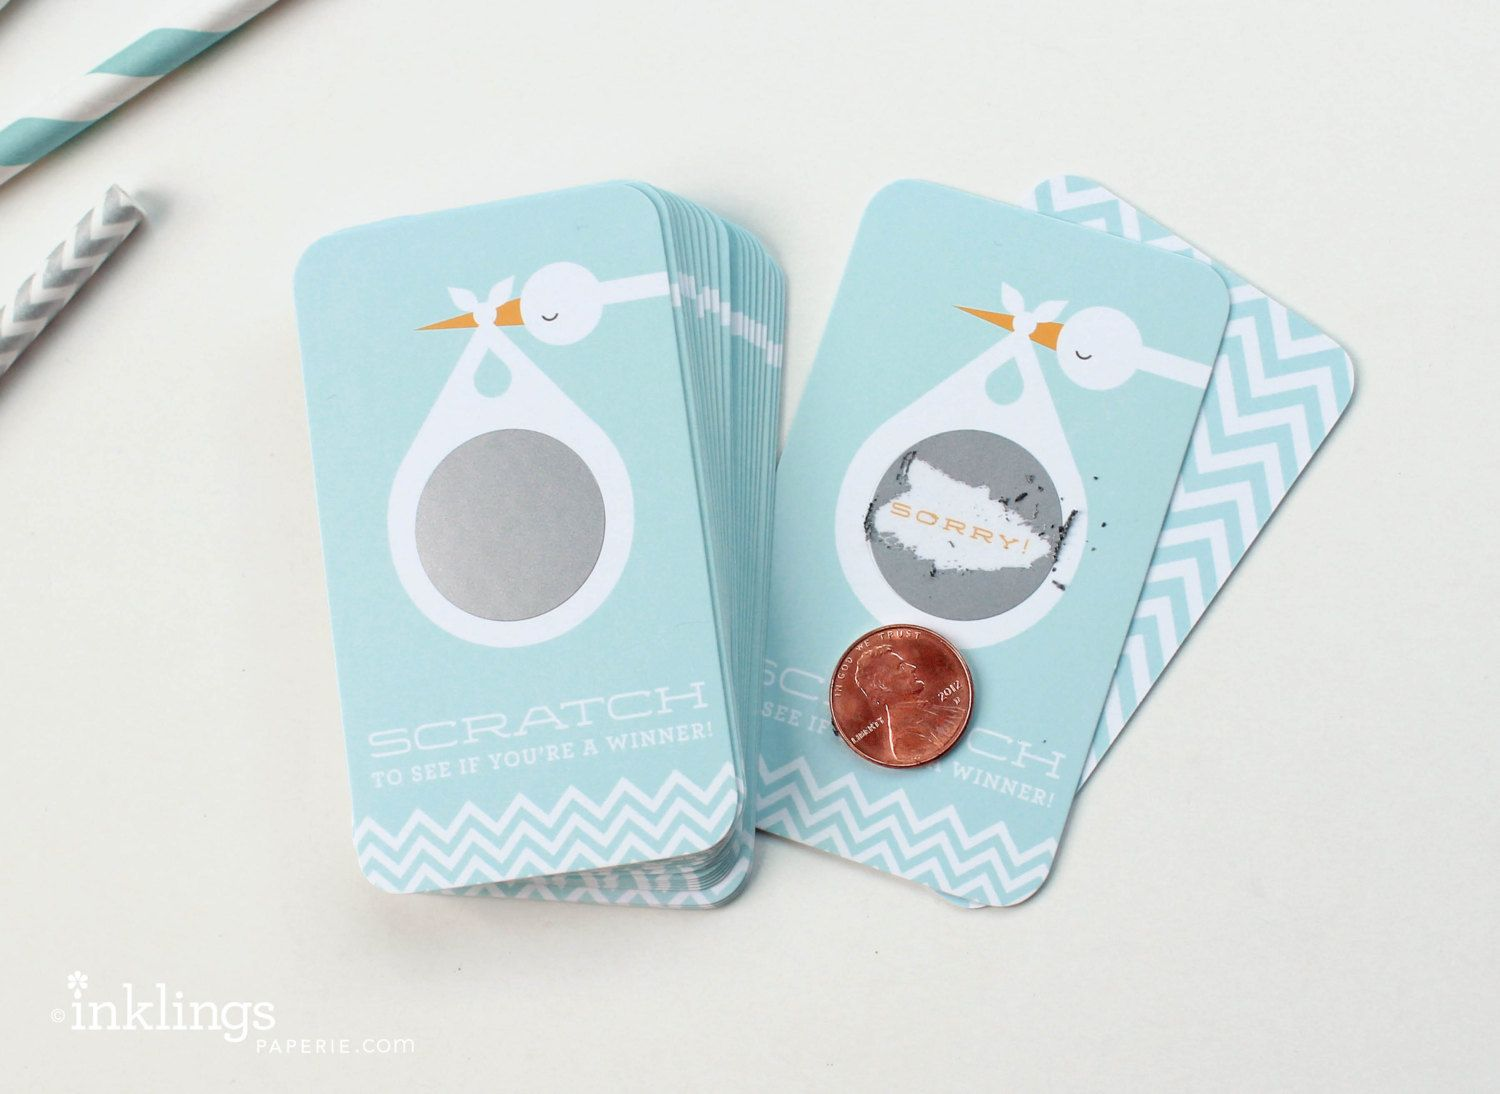 "Foto: Reprodução / <a href=""https://www.etsy.com/pt/listing/110297699/24-scratch-off-cards-for-baby-shower?ga_order=most_relevant&ga_search_type=all&ga_view_type=gallery&ga_search_query=baby%20shower&ref=sr_gallery_4"" target=""_blank"">Etsy</a>"